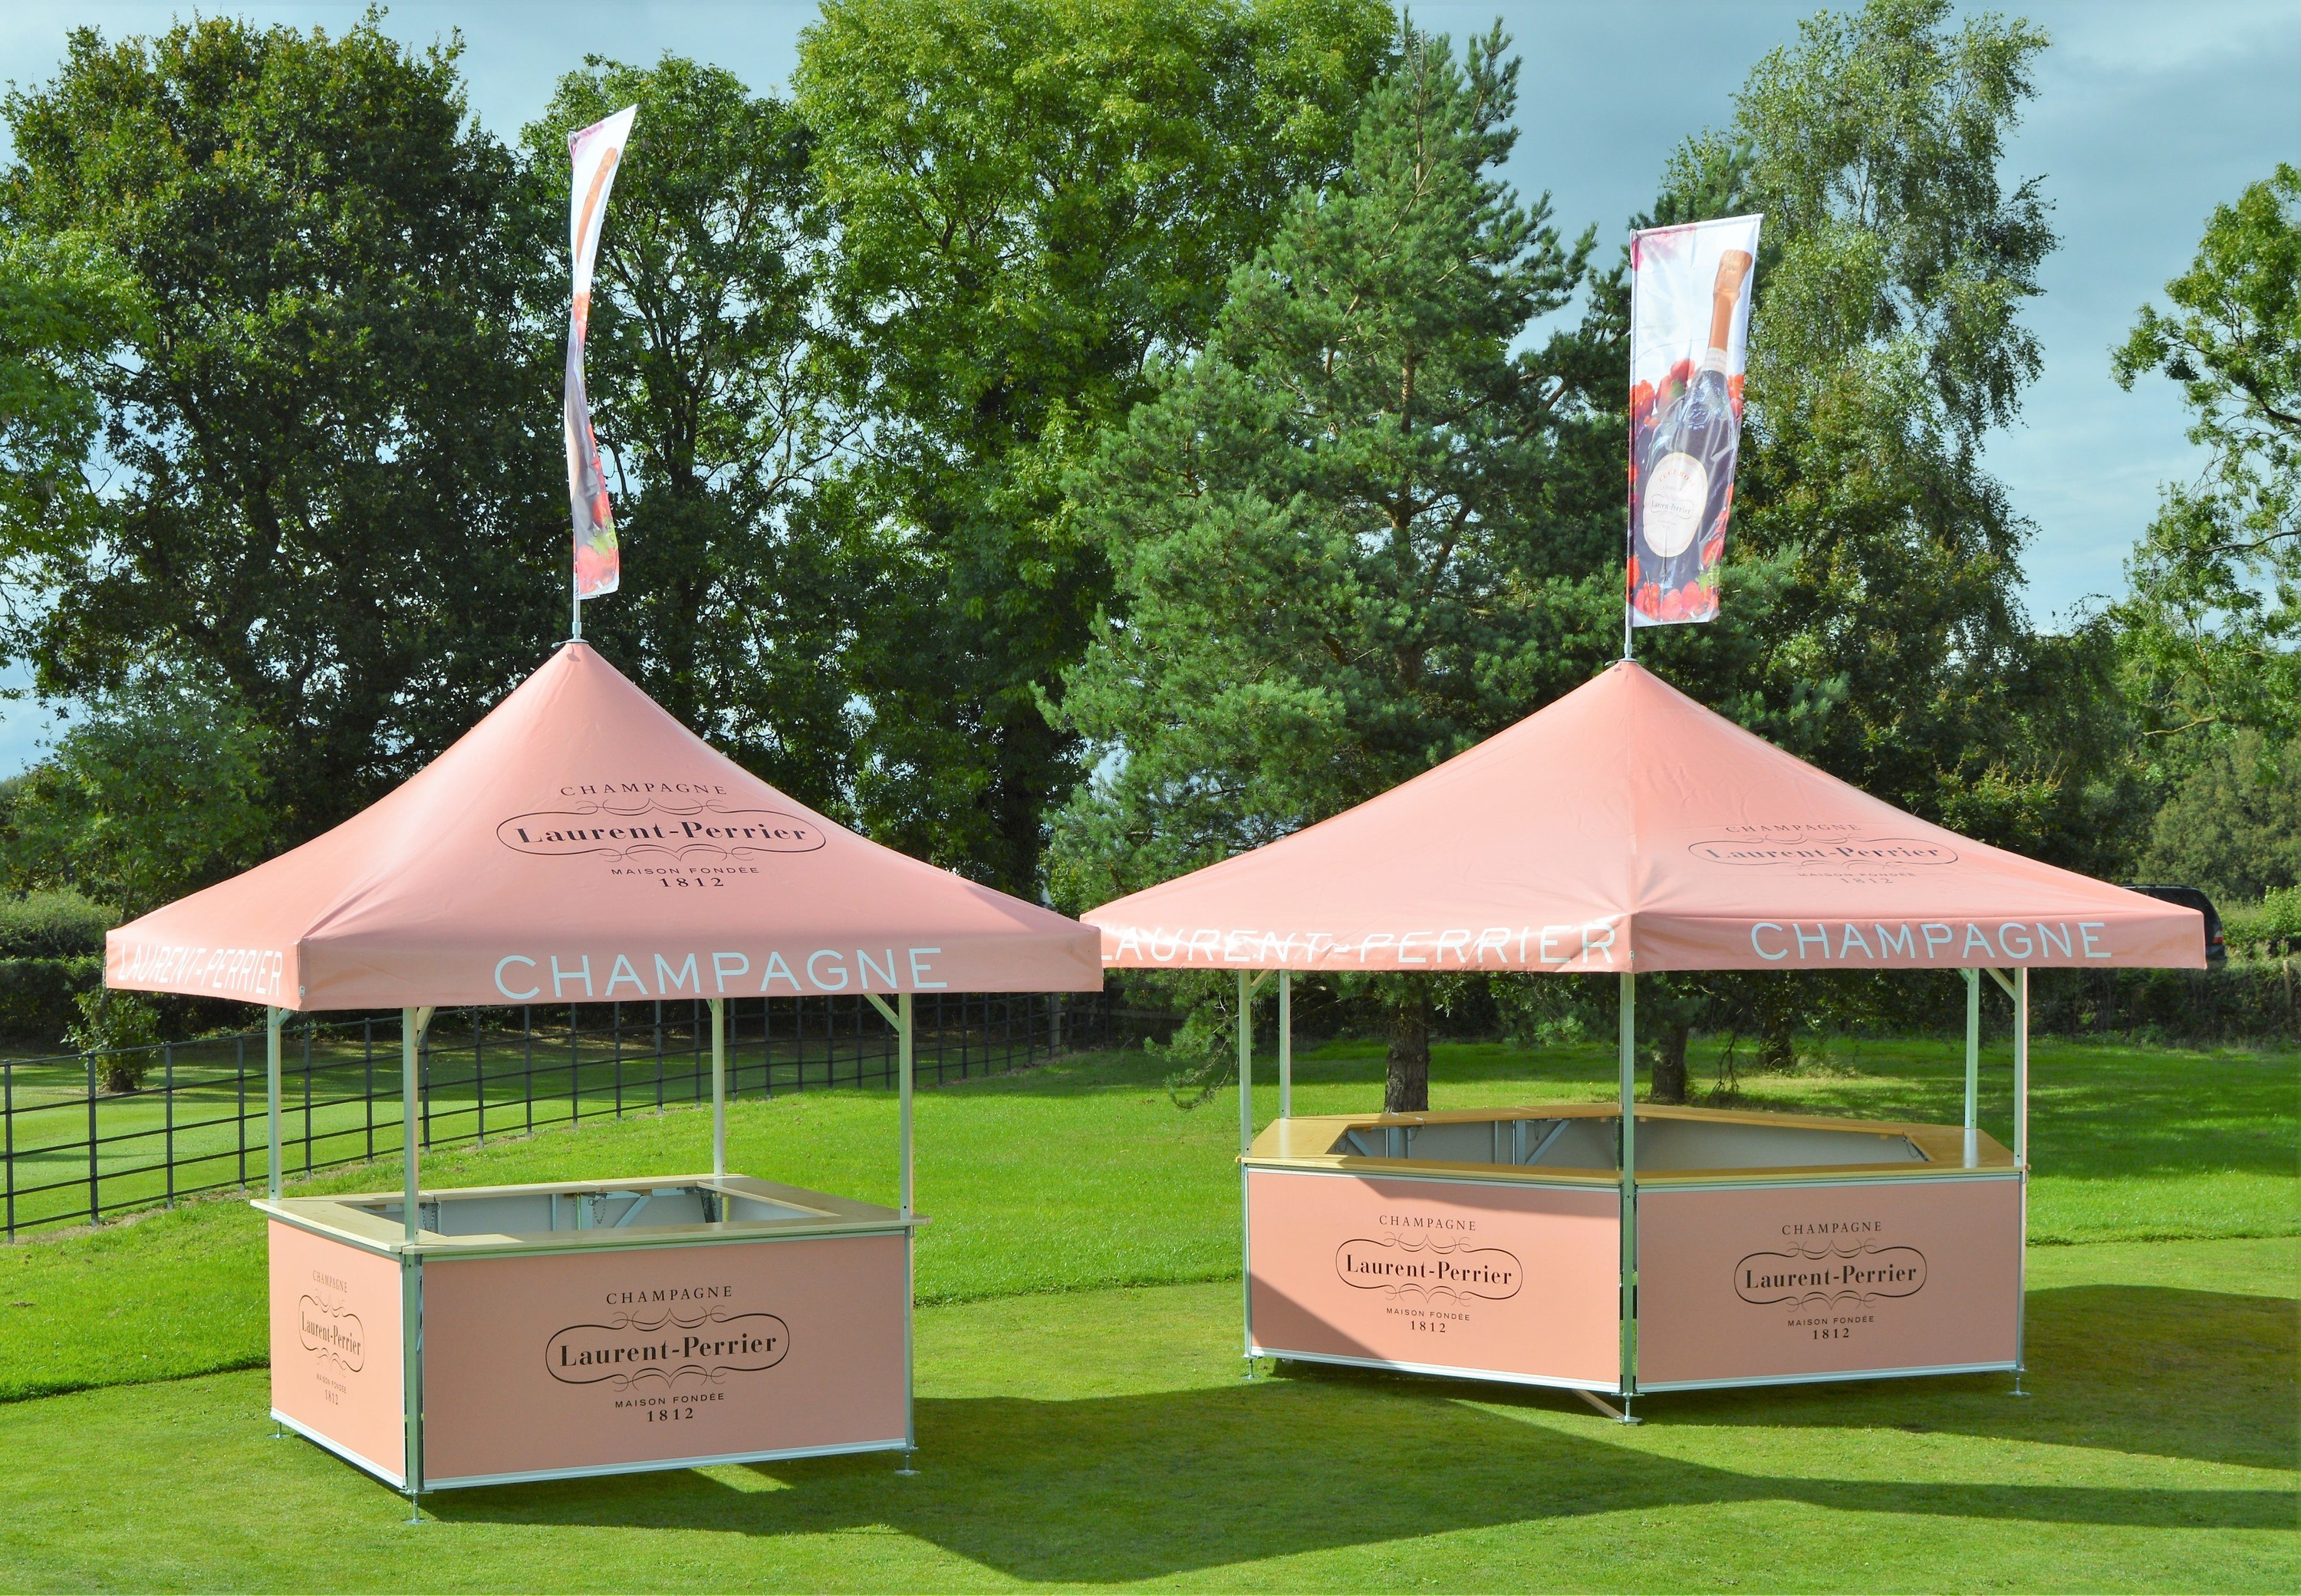 <p>Event, Mobile &amp; Stadia Bars &#8211; Tents &amp; Marquees &#8211; Hexagonal &amp; Square Pavilions.</p> <p>&nbsp;</p> <p>Laurent Perrier Outdoor Promotional Stand Premium Champagne Event Bar ideally suited for Racecourse or other high-profile sporting events and venues eg cricket ground.</p> <p>&nbsp;</p> <p>Branding opportunities of the roof and base panels are available.  Both include Roof Flags</p>